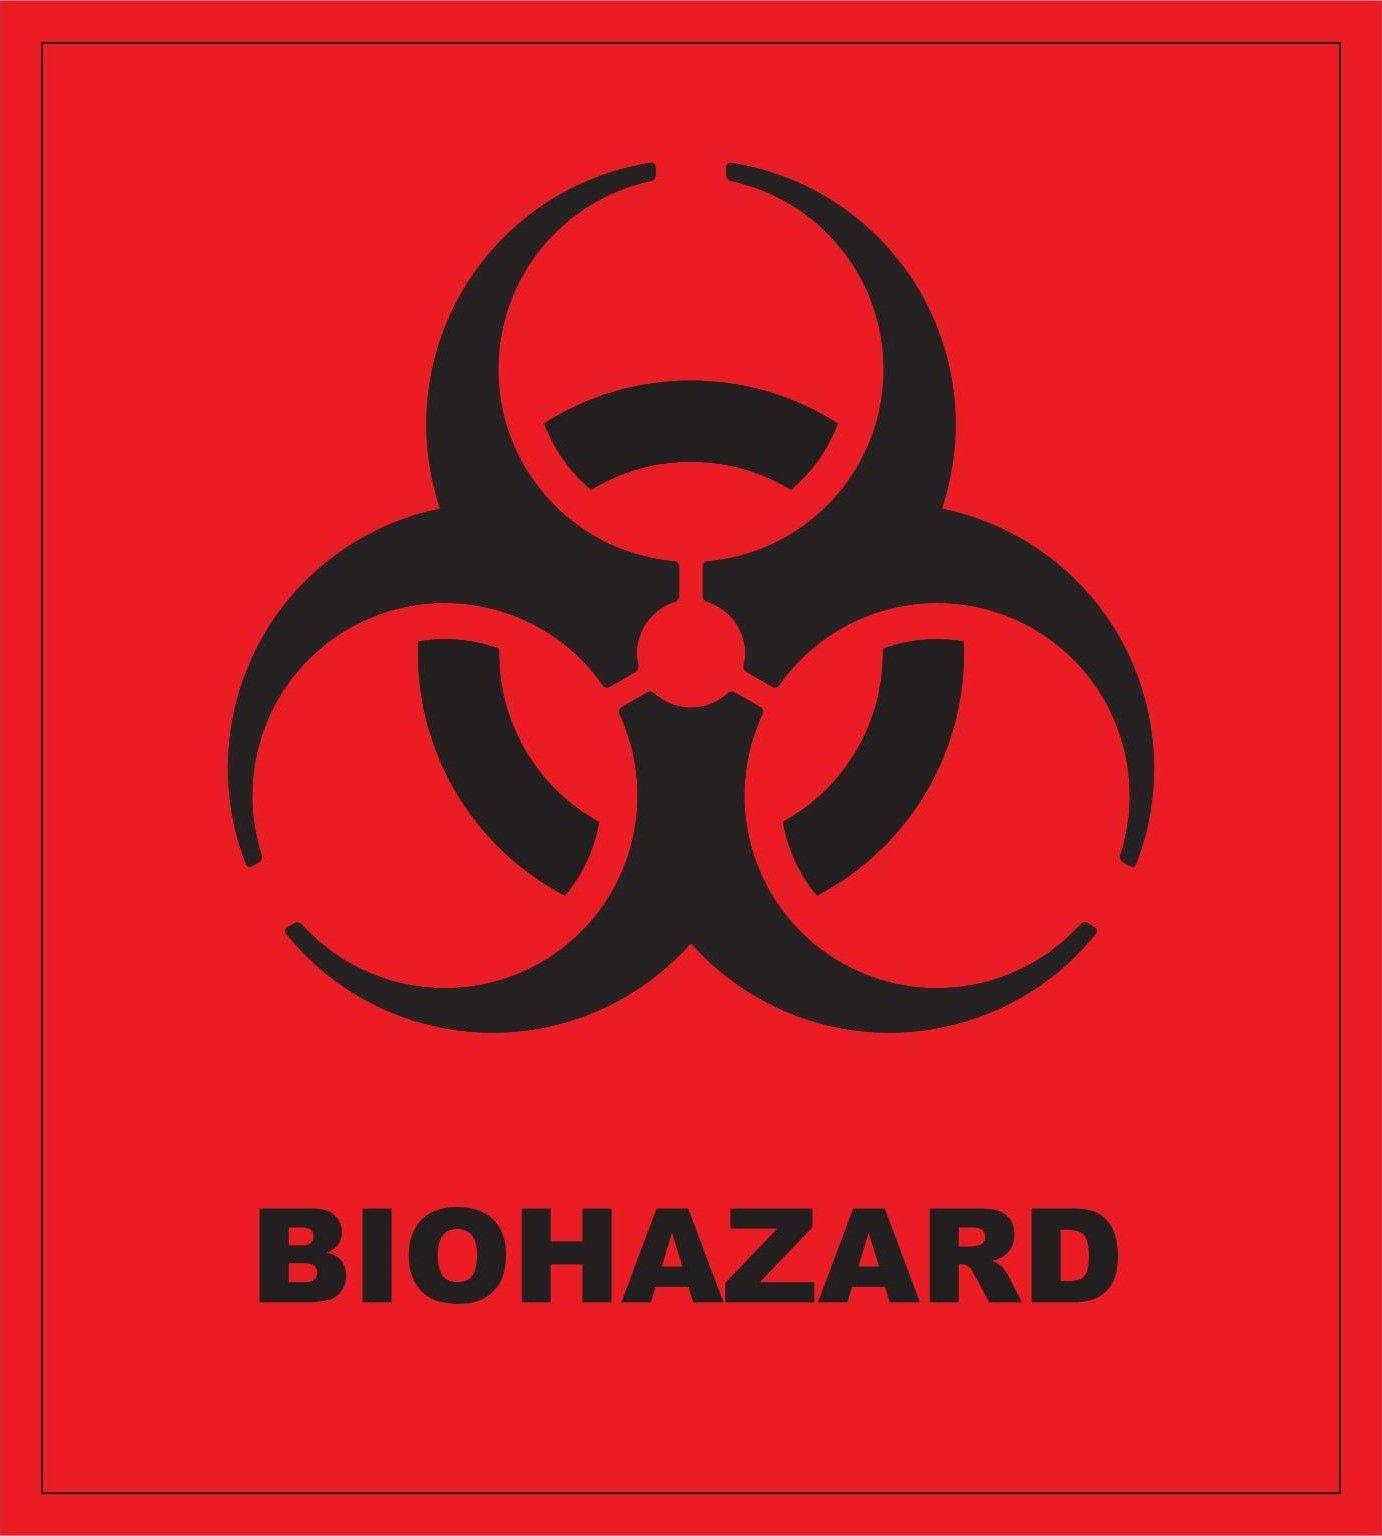 biohazard symbol black - photo #24